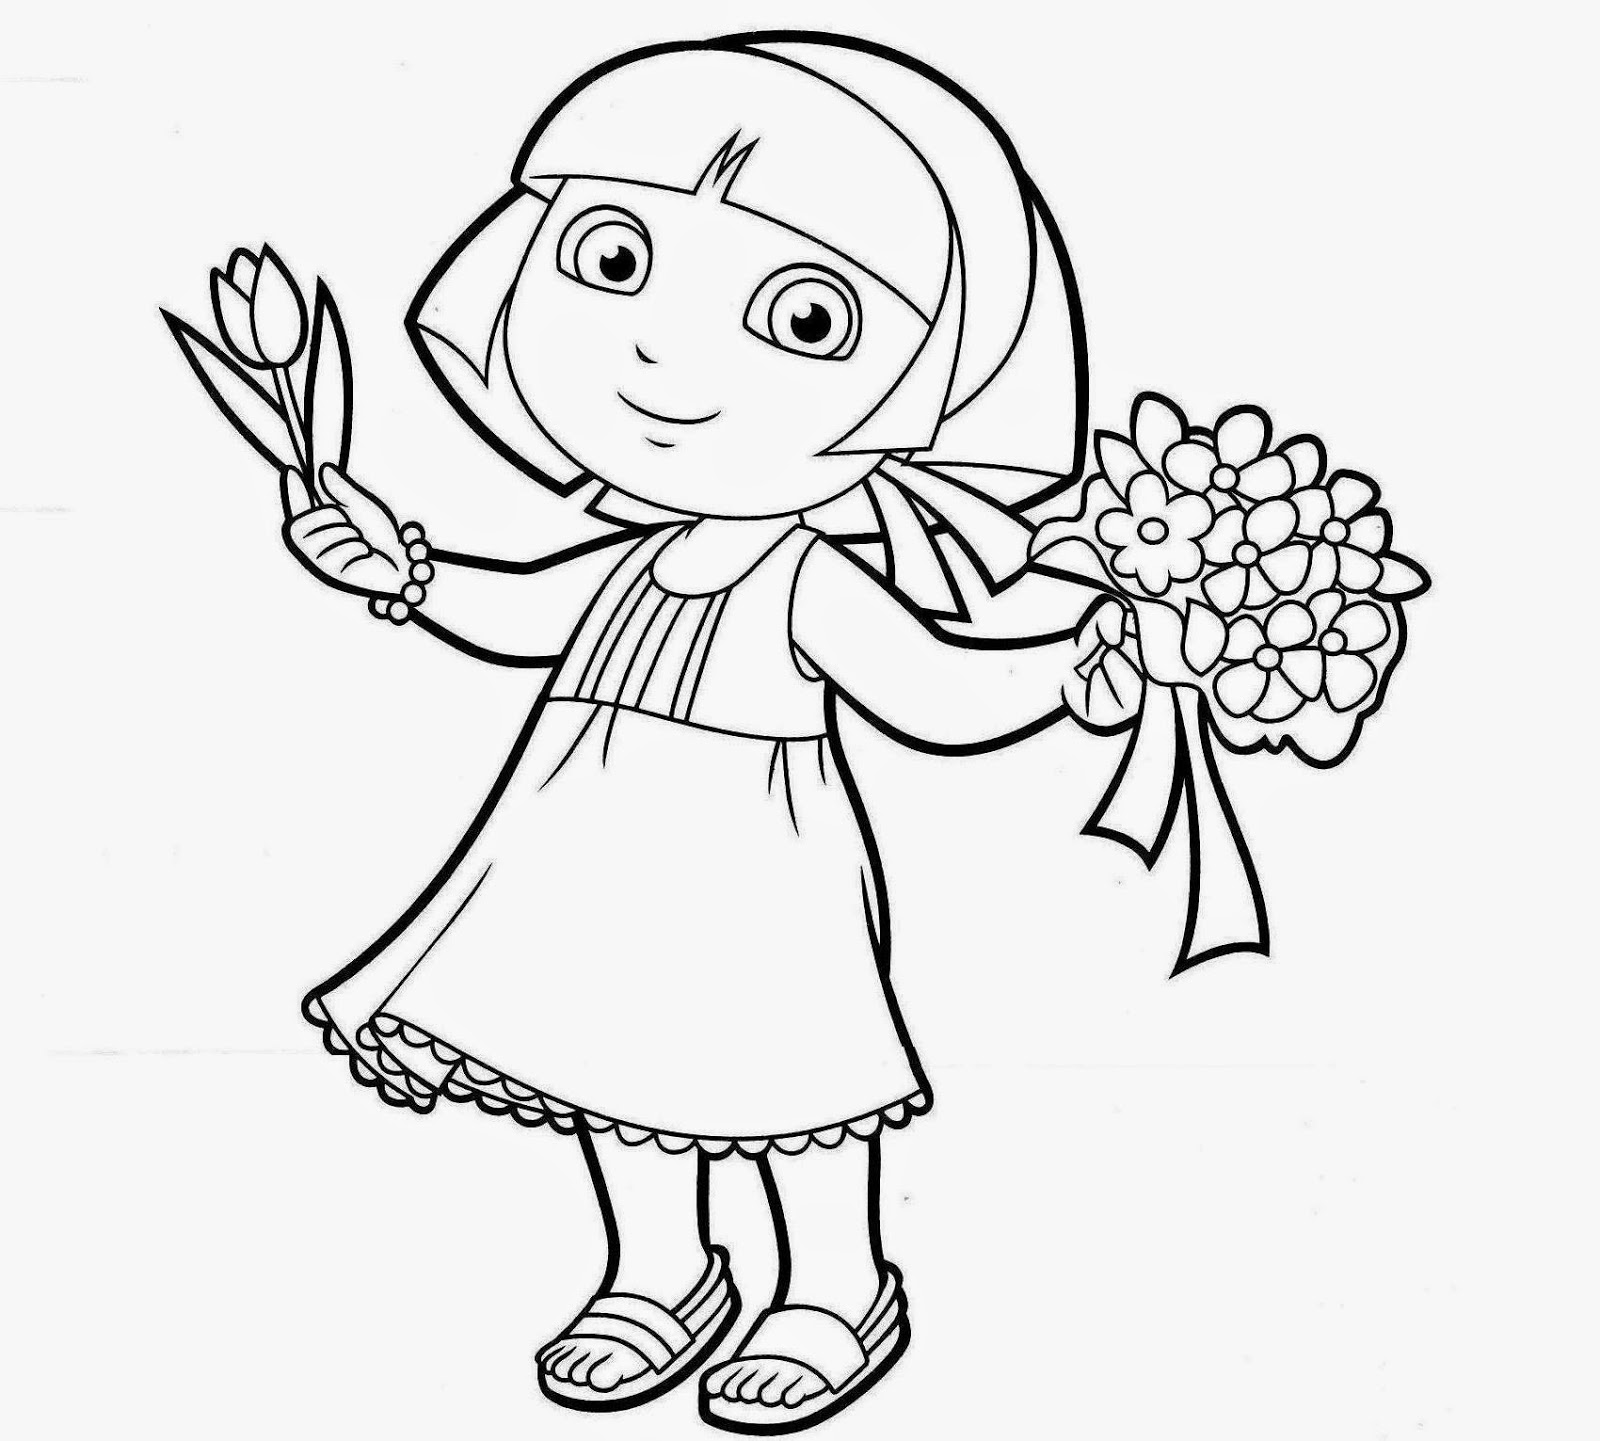 coloring pages dora princess - photo#26